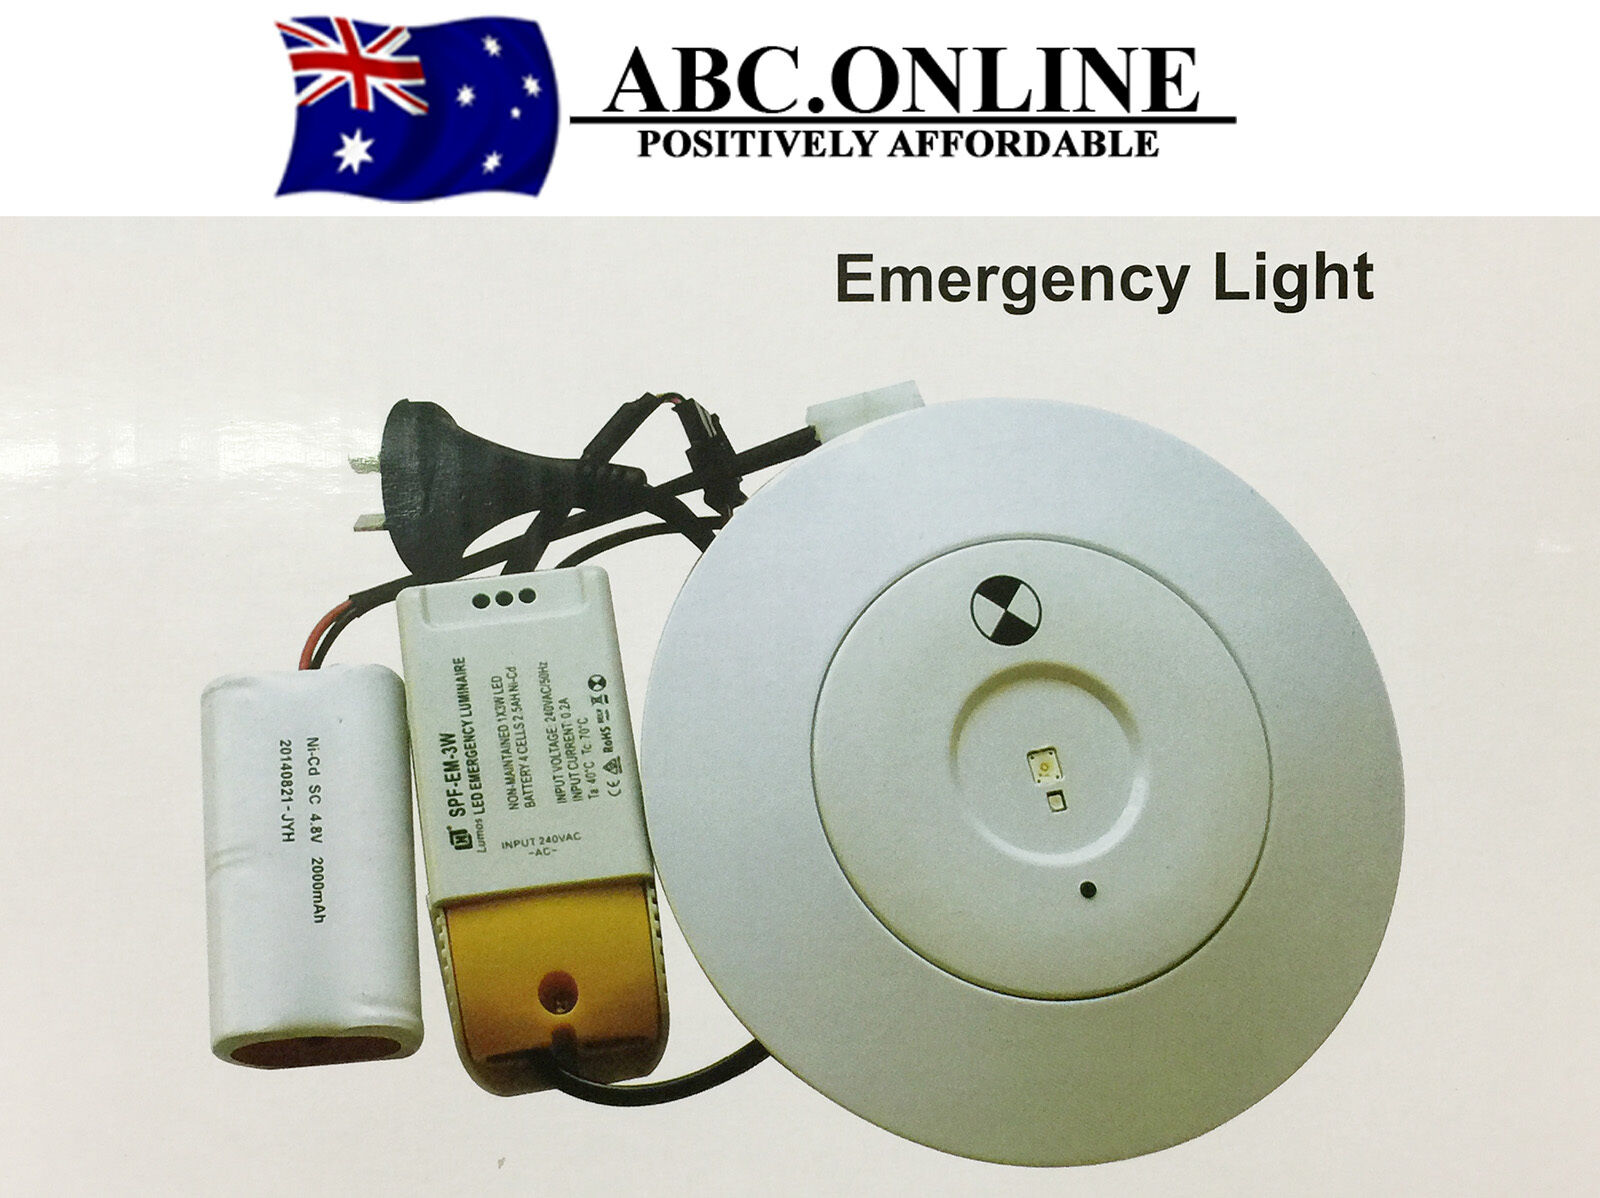 Ceiling Lights That Run On Batteries : Emergency led exit light sign wall ceiling running man battery w spitfire